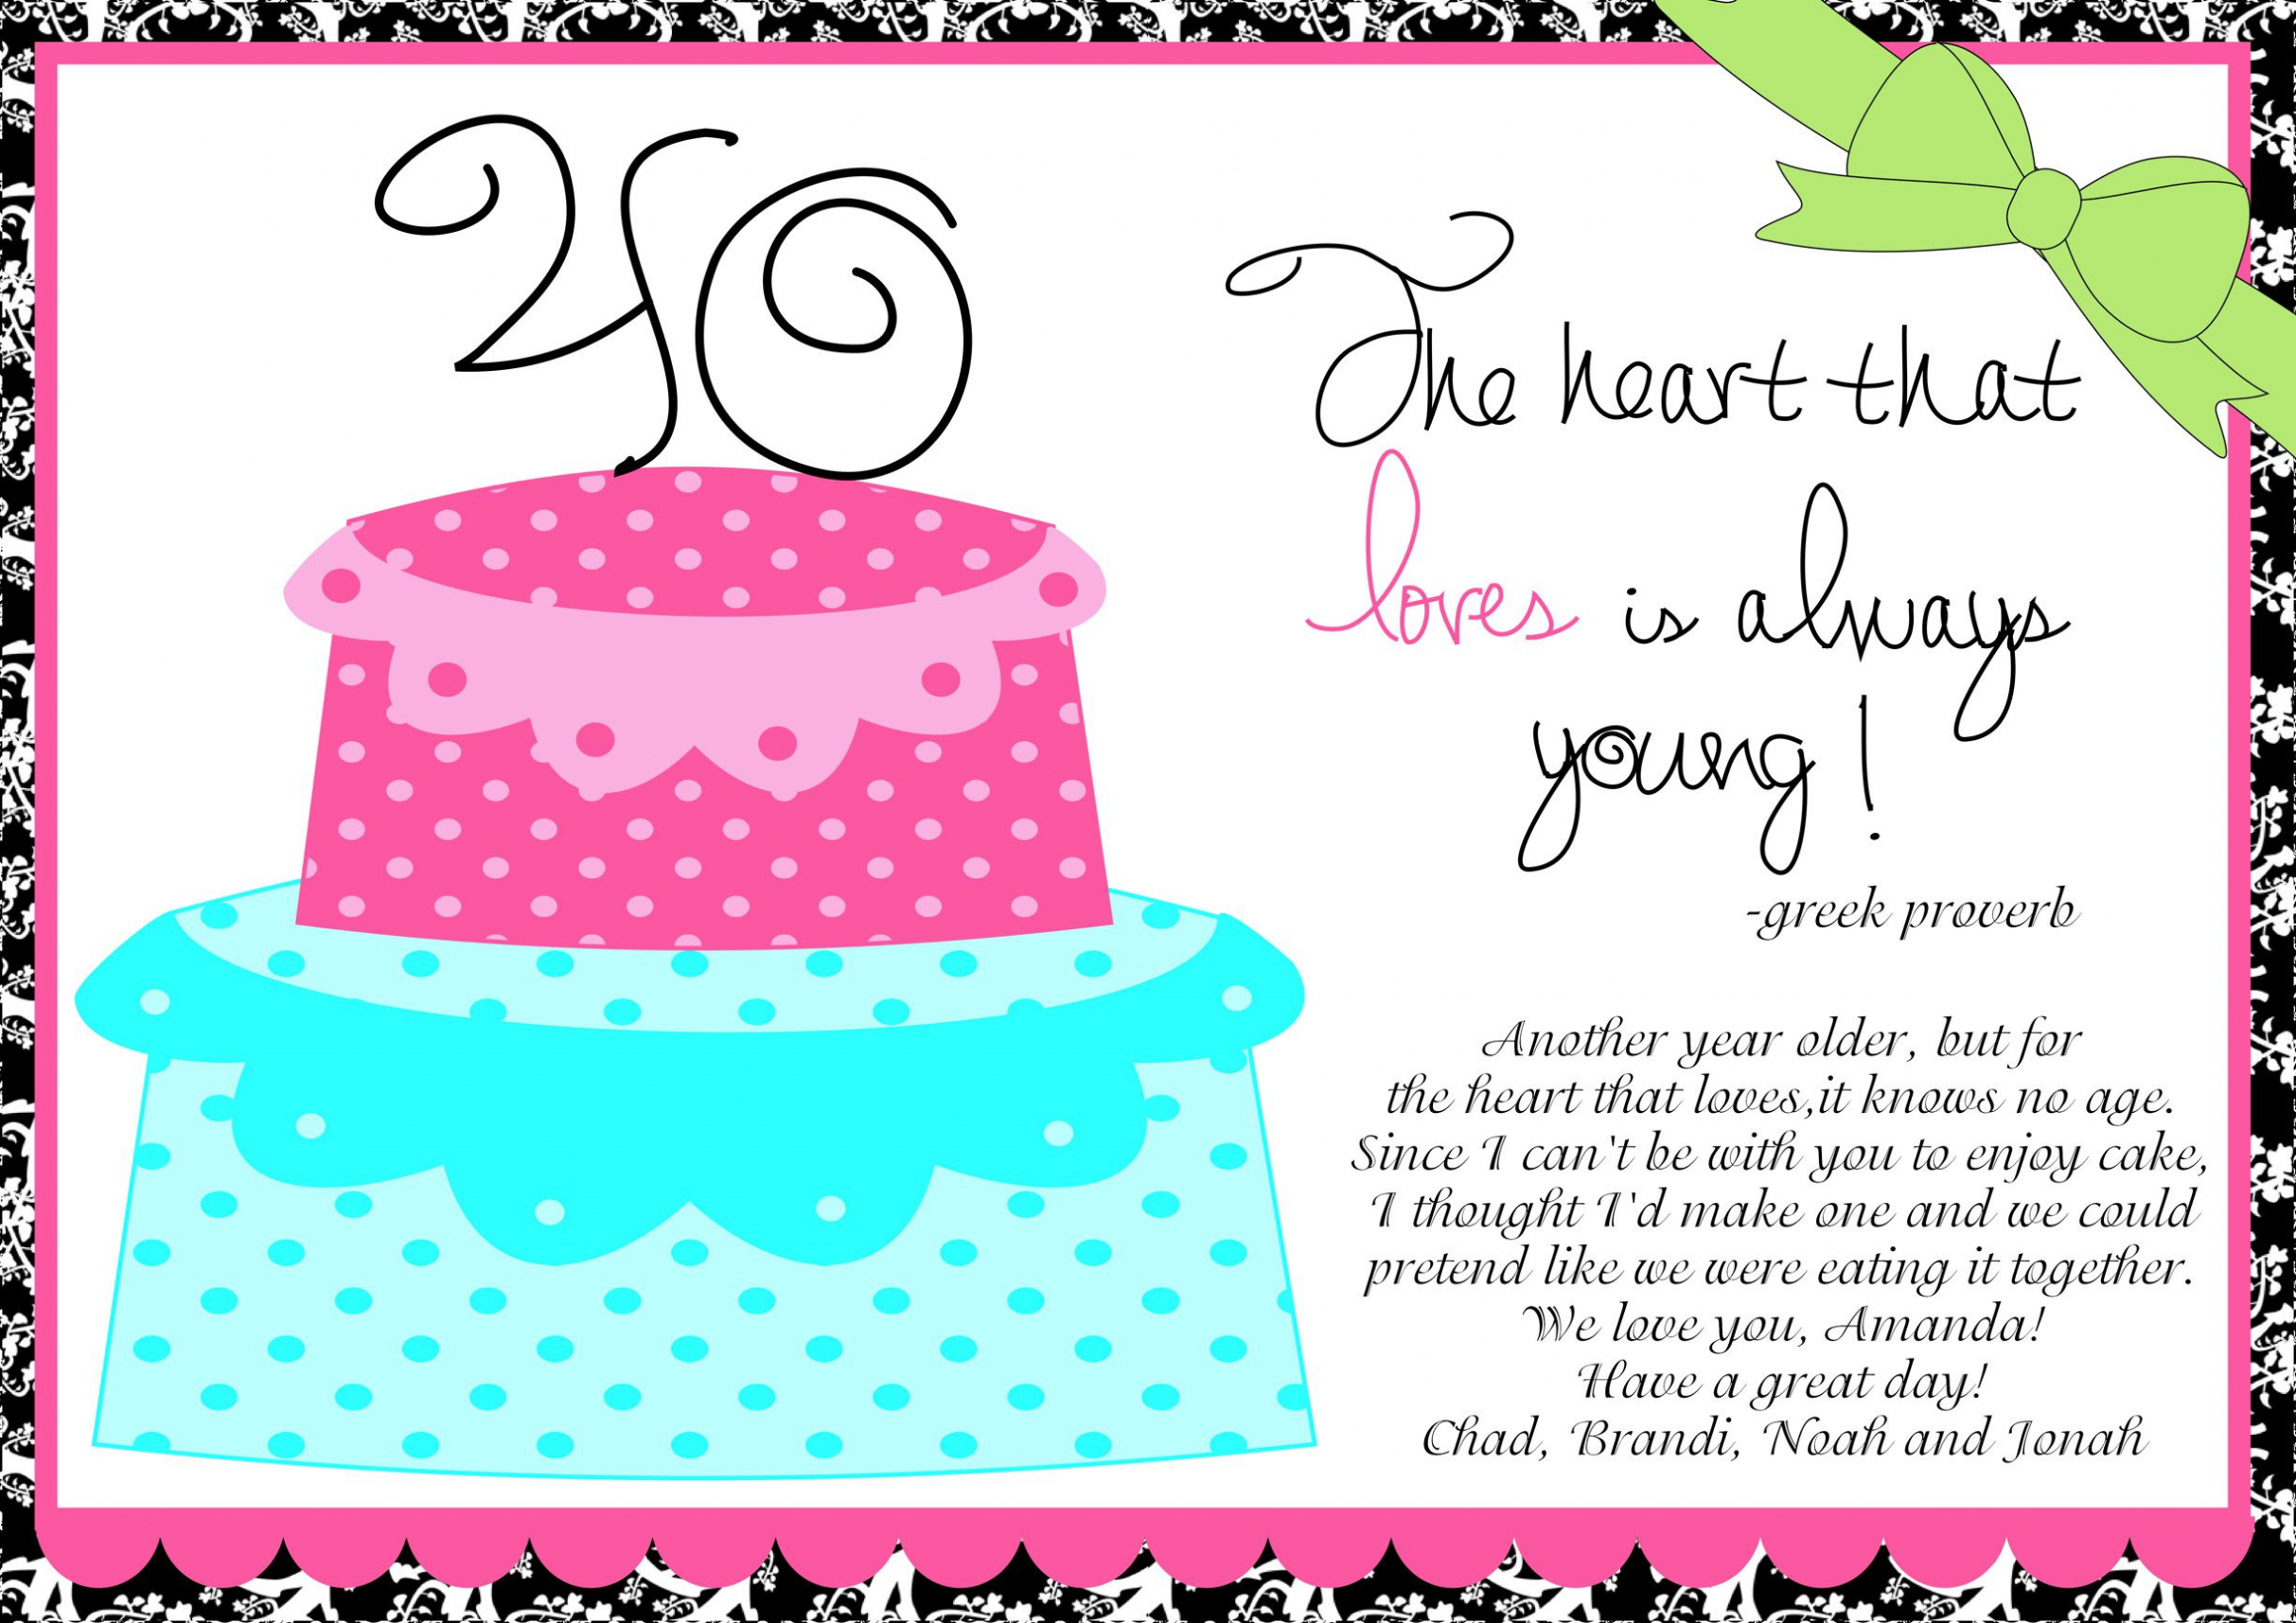 picture of invitation card of birthday ; happy-birthday-invitation-cards-happy-birthday-invitation-cards-birthday-invitations-card-1